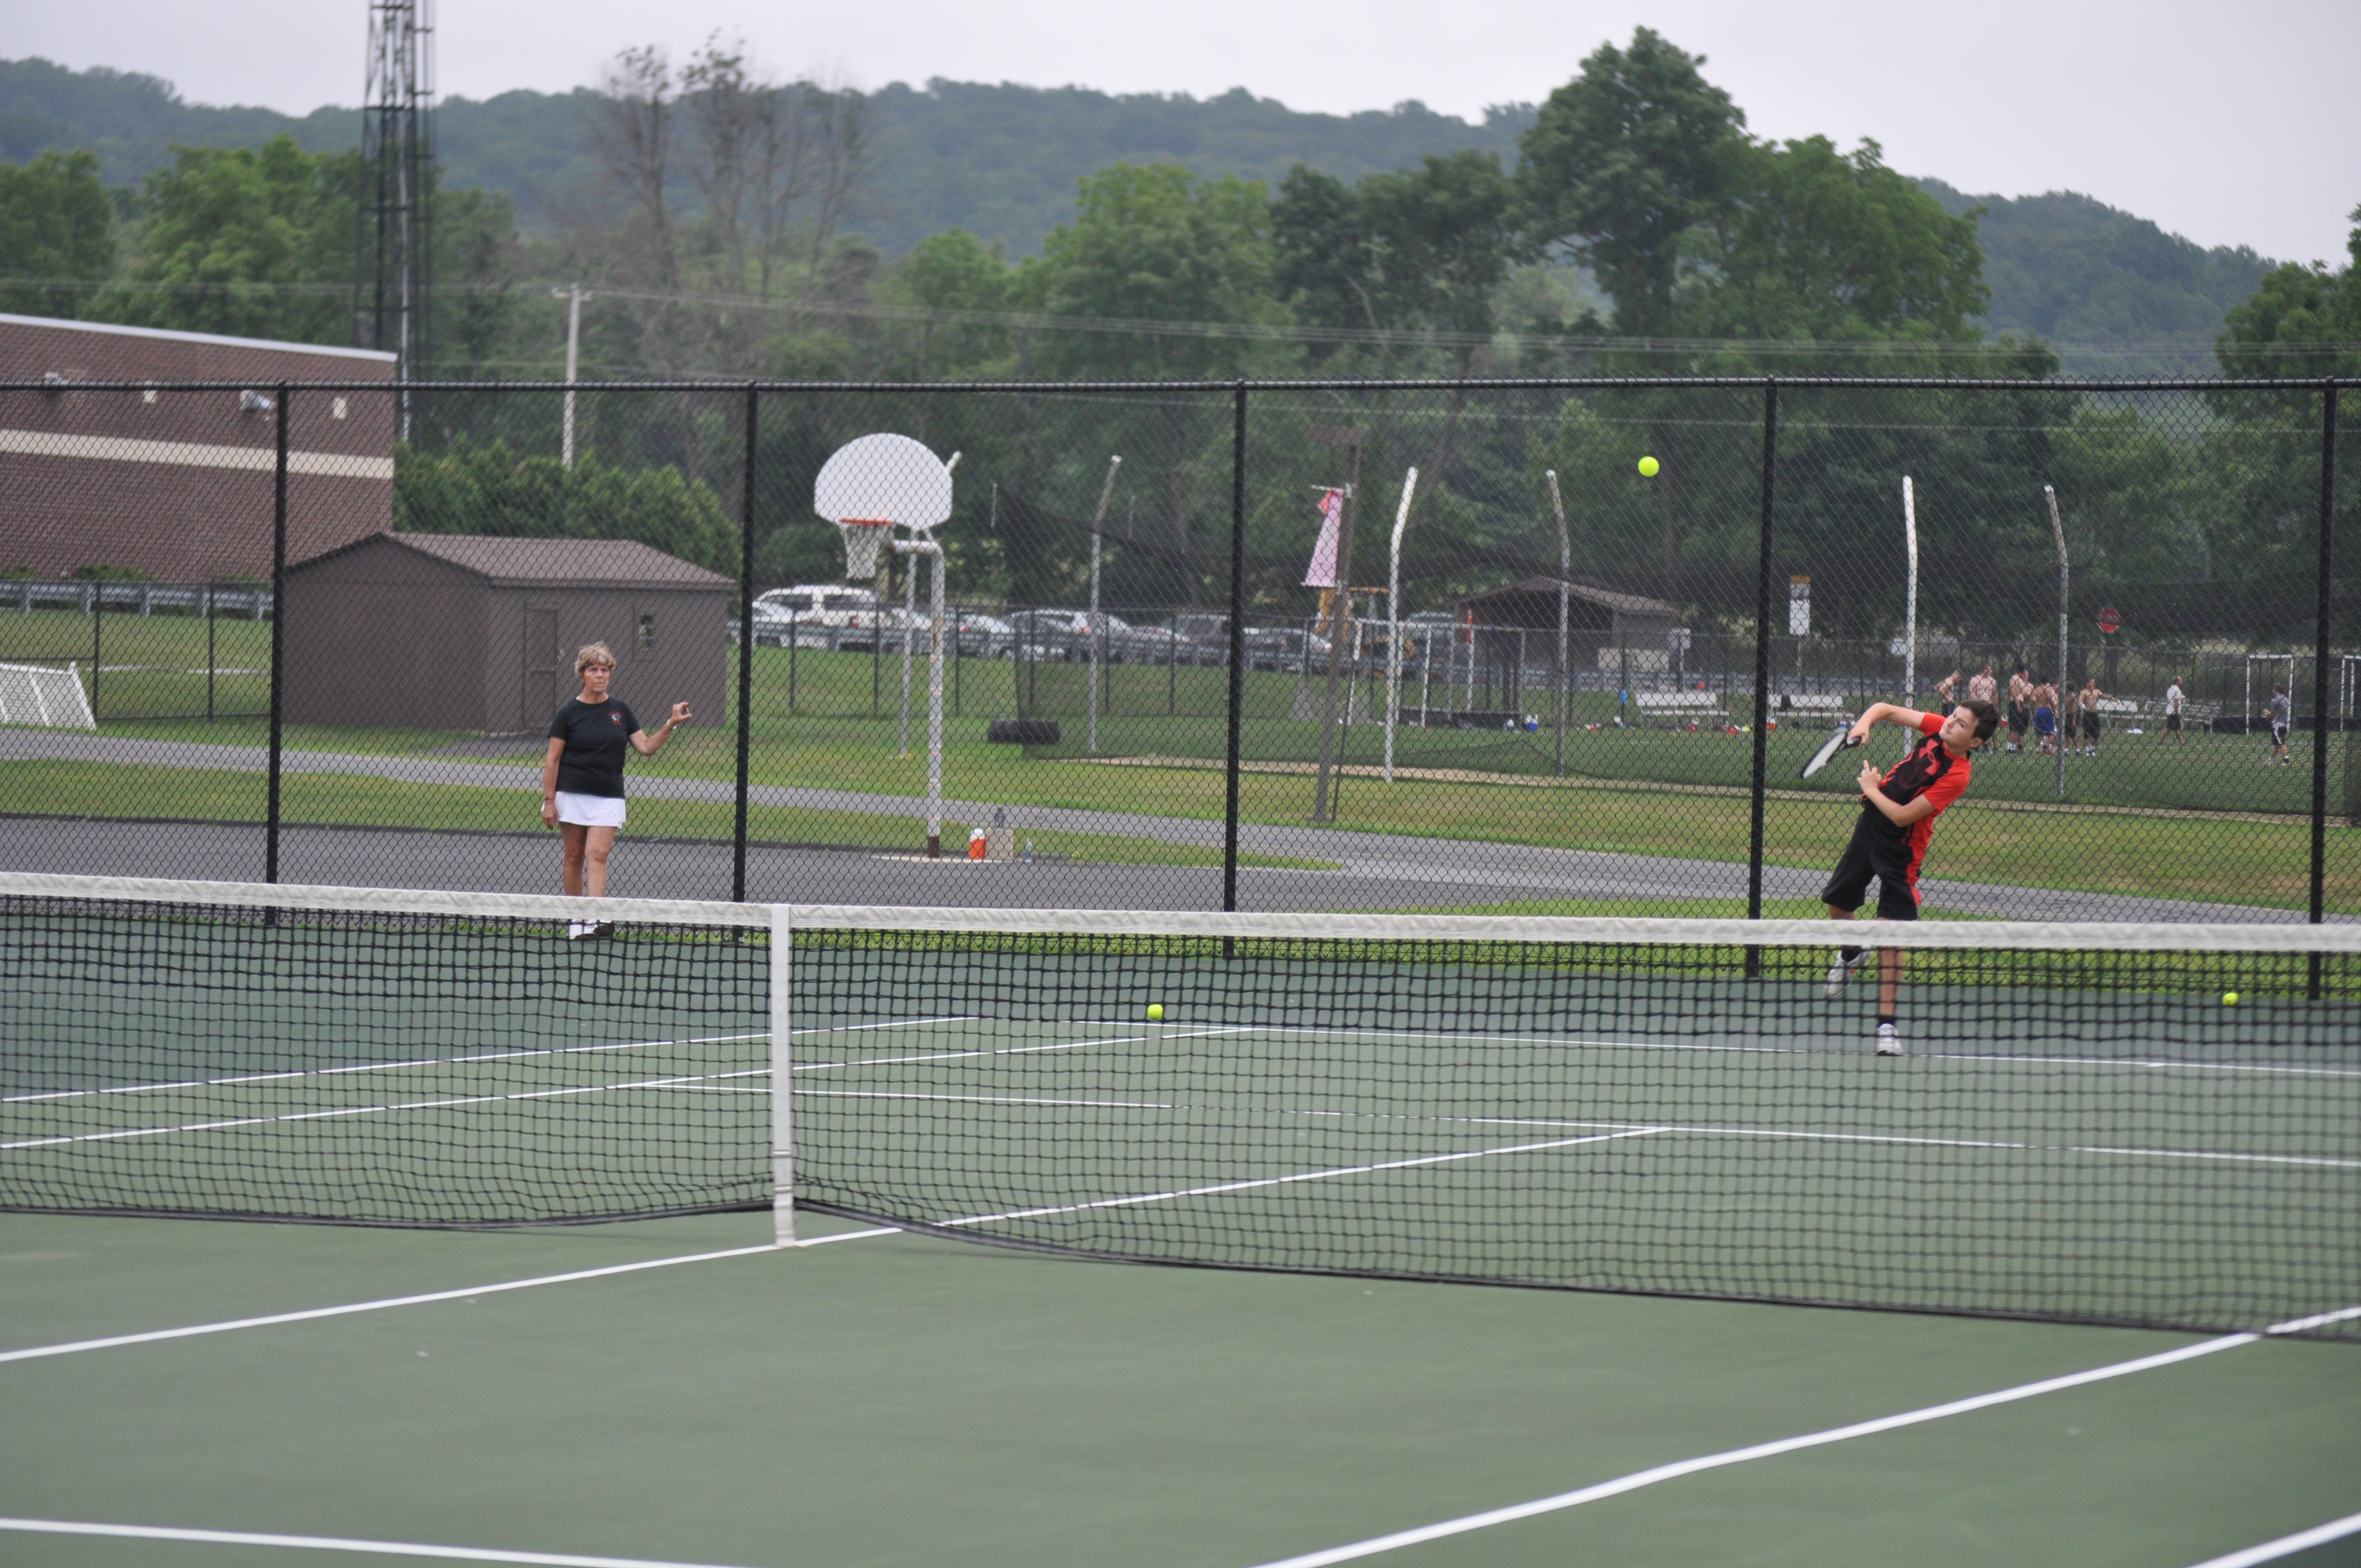 For the past eight years the SV tennis program has been under the watchful eye of Coach Joann Ochse